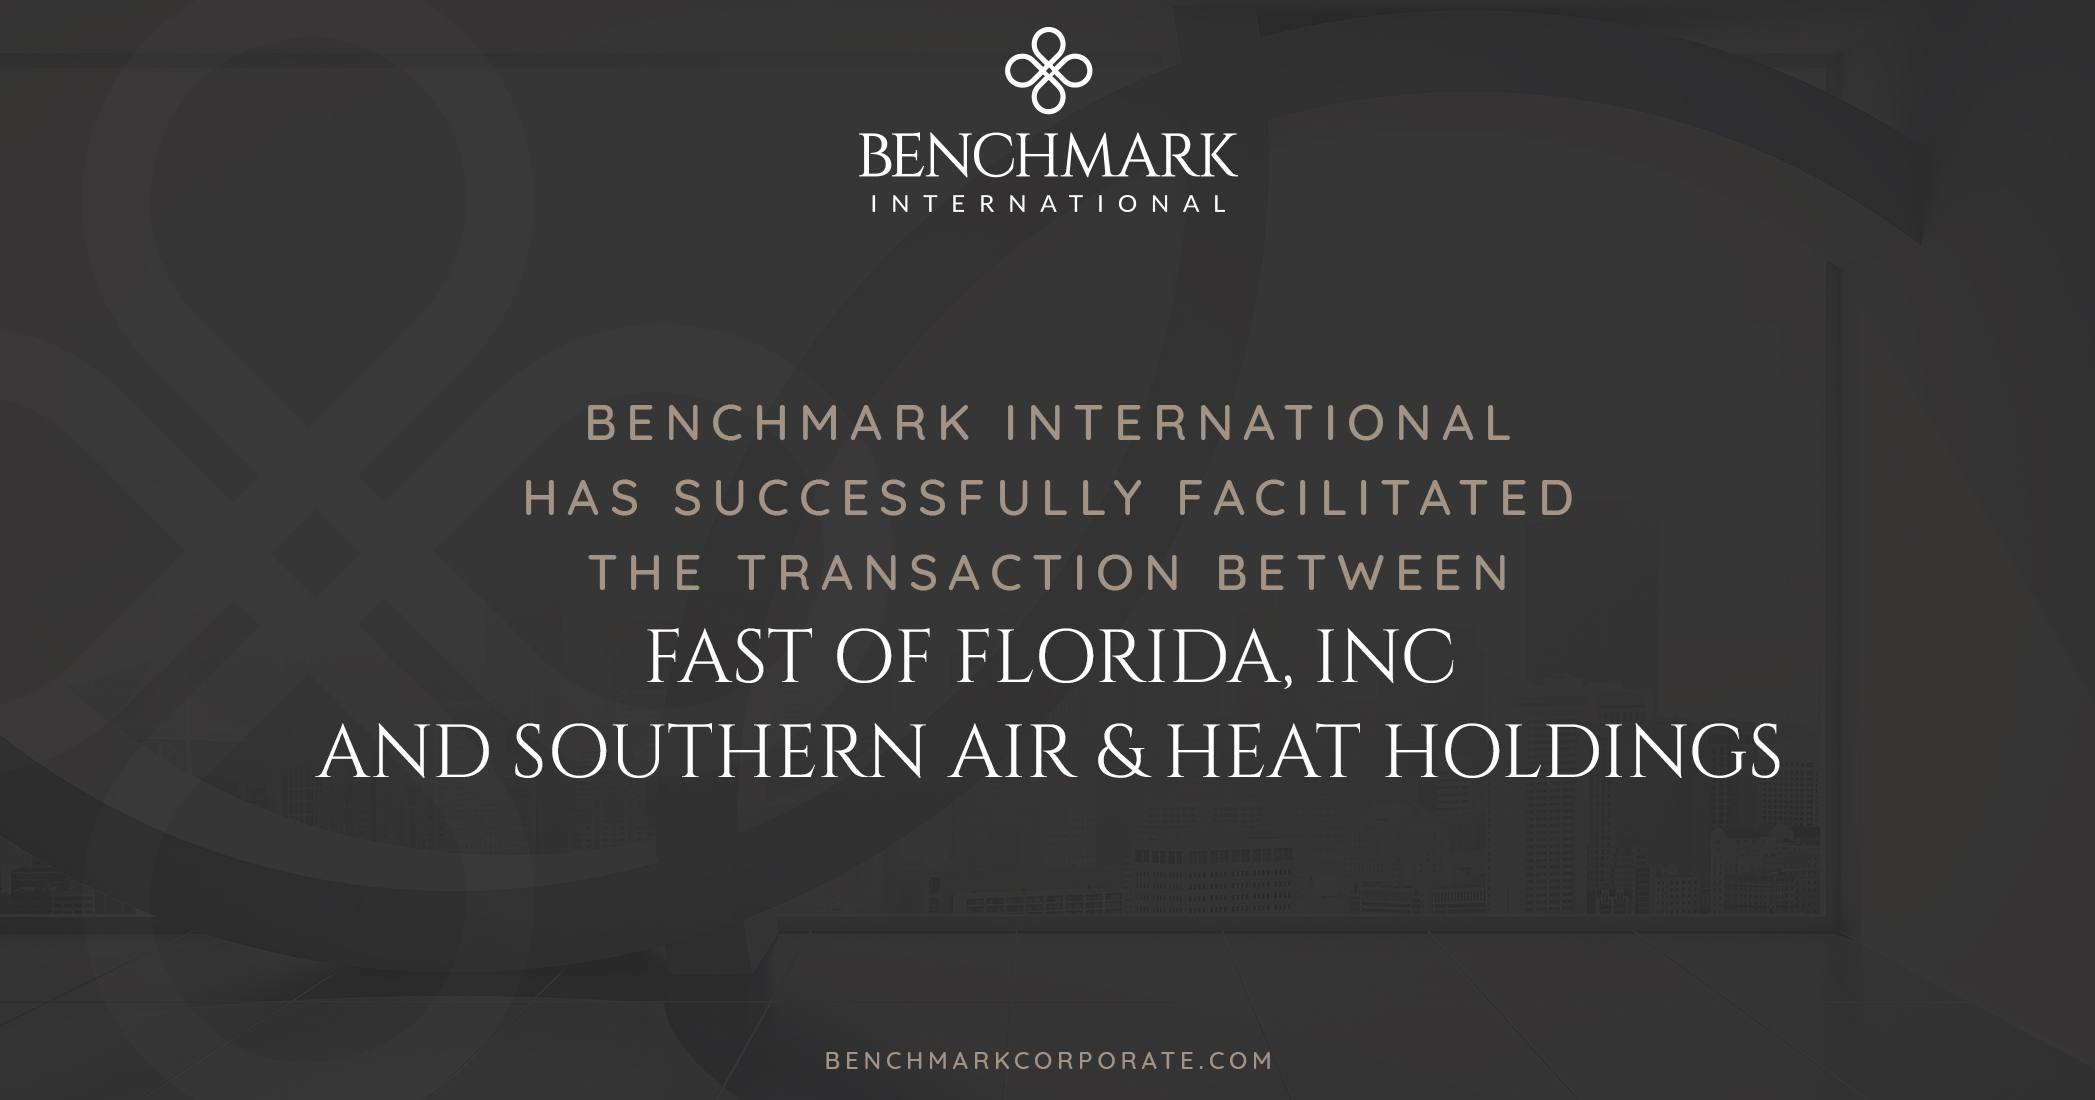 Benchmark International Completes Sale of Fast of Florida, Inc to Southern Air & Heat Holdings